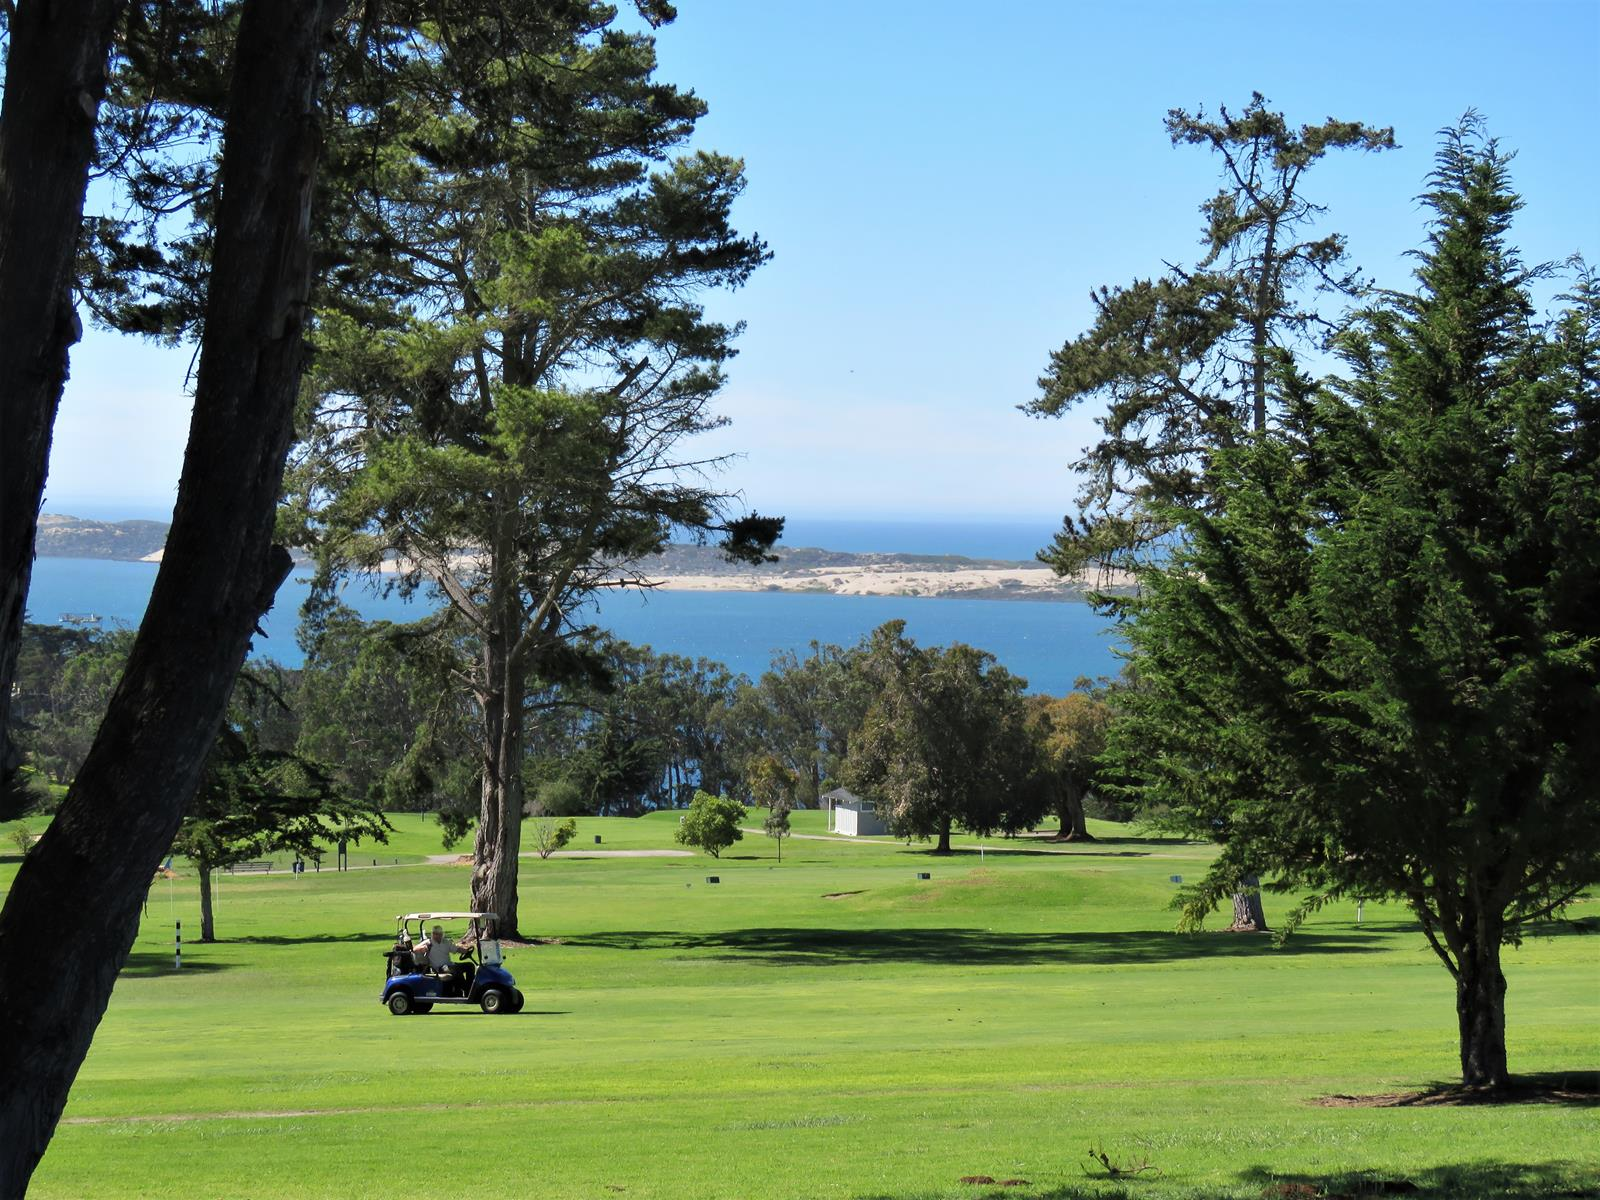 Morro Bay Golf Course 2 by Cindy Shanks